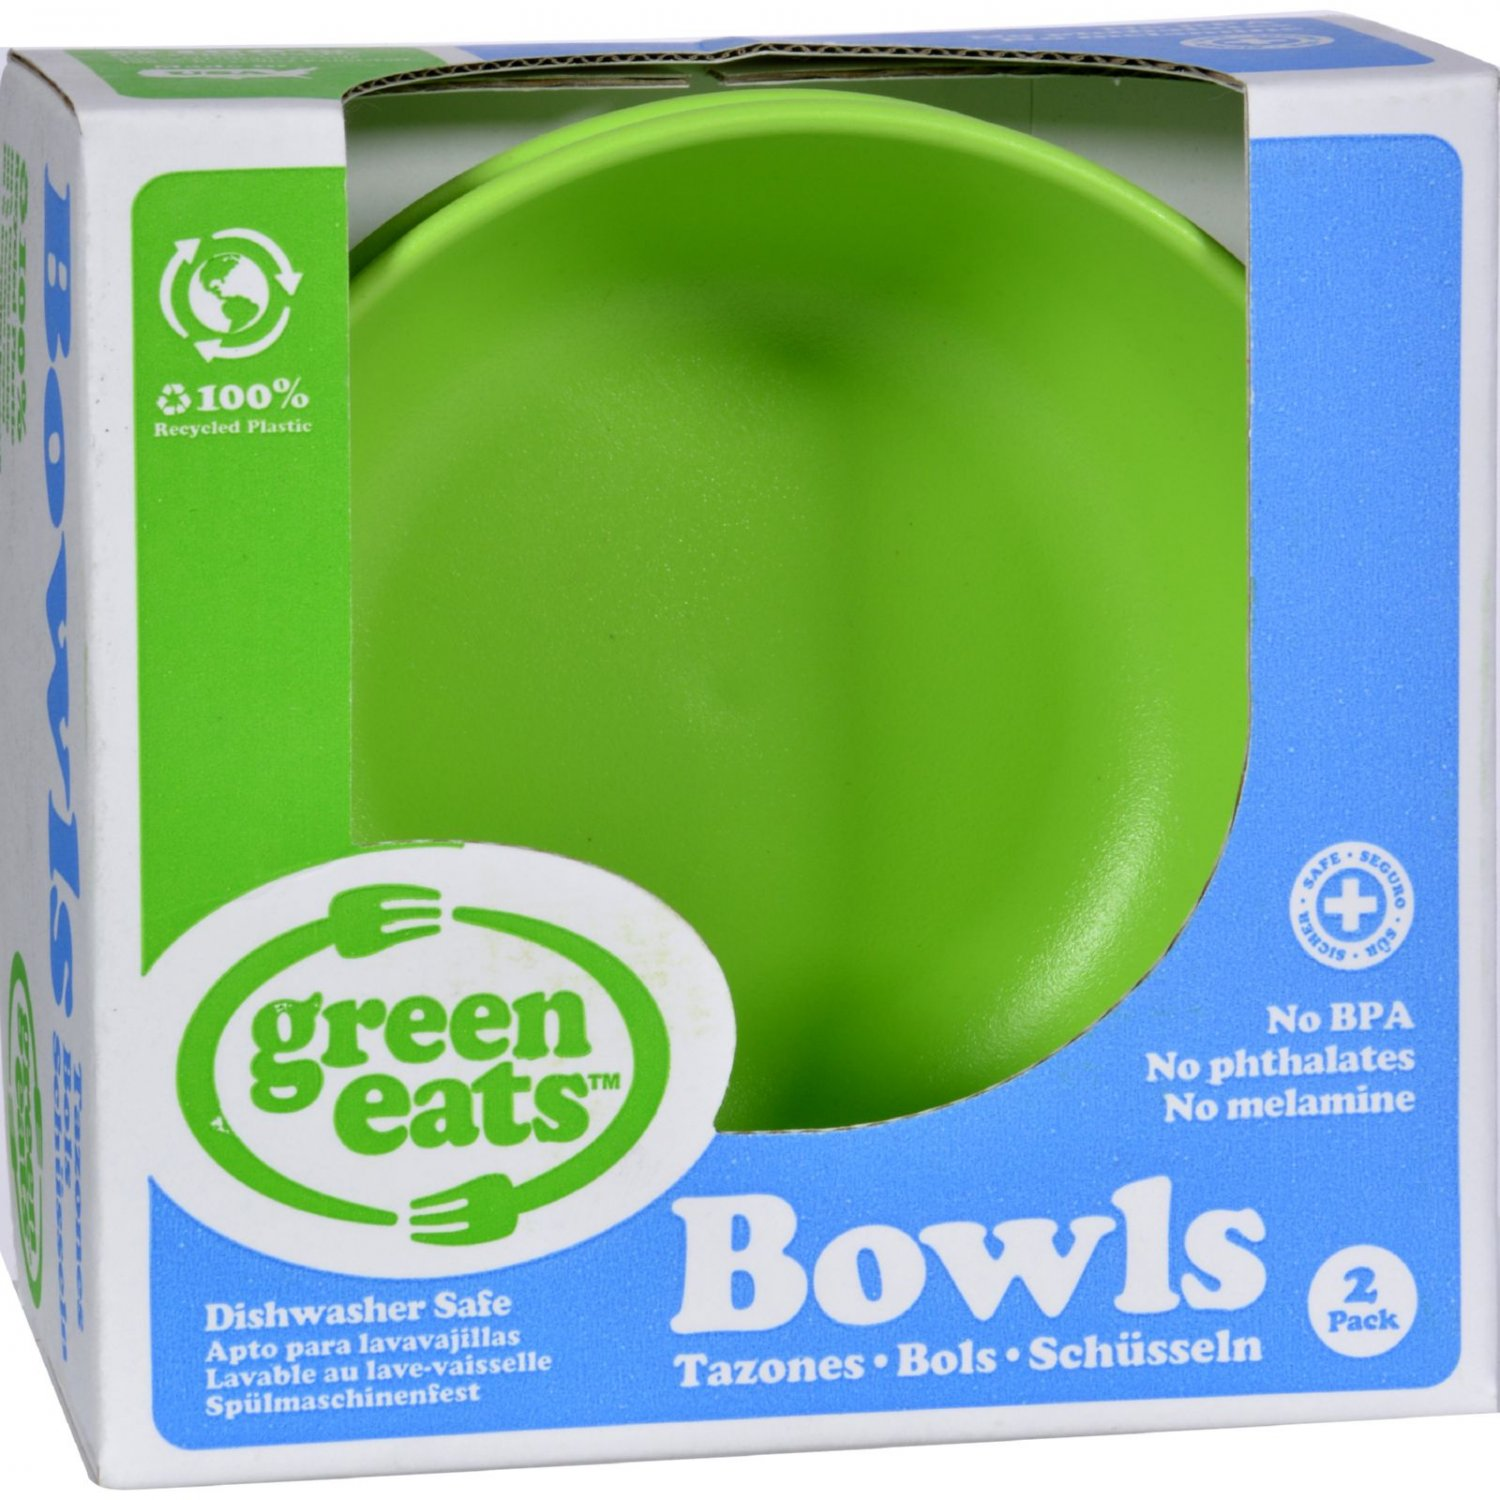 Green Toys Bowls - Green - 2 ct